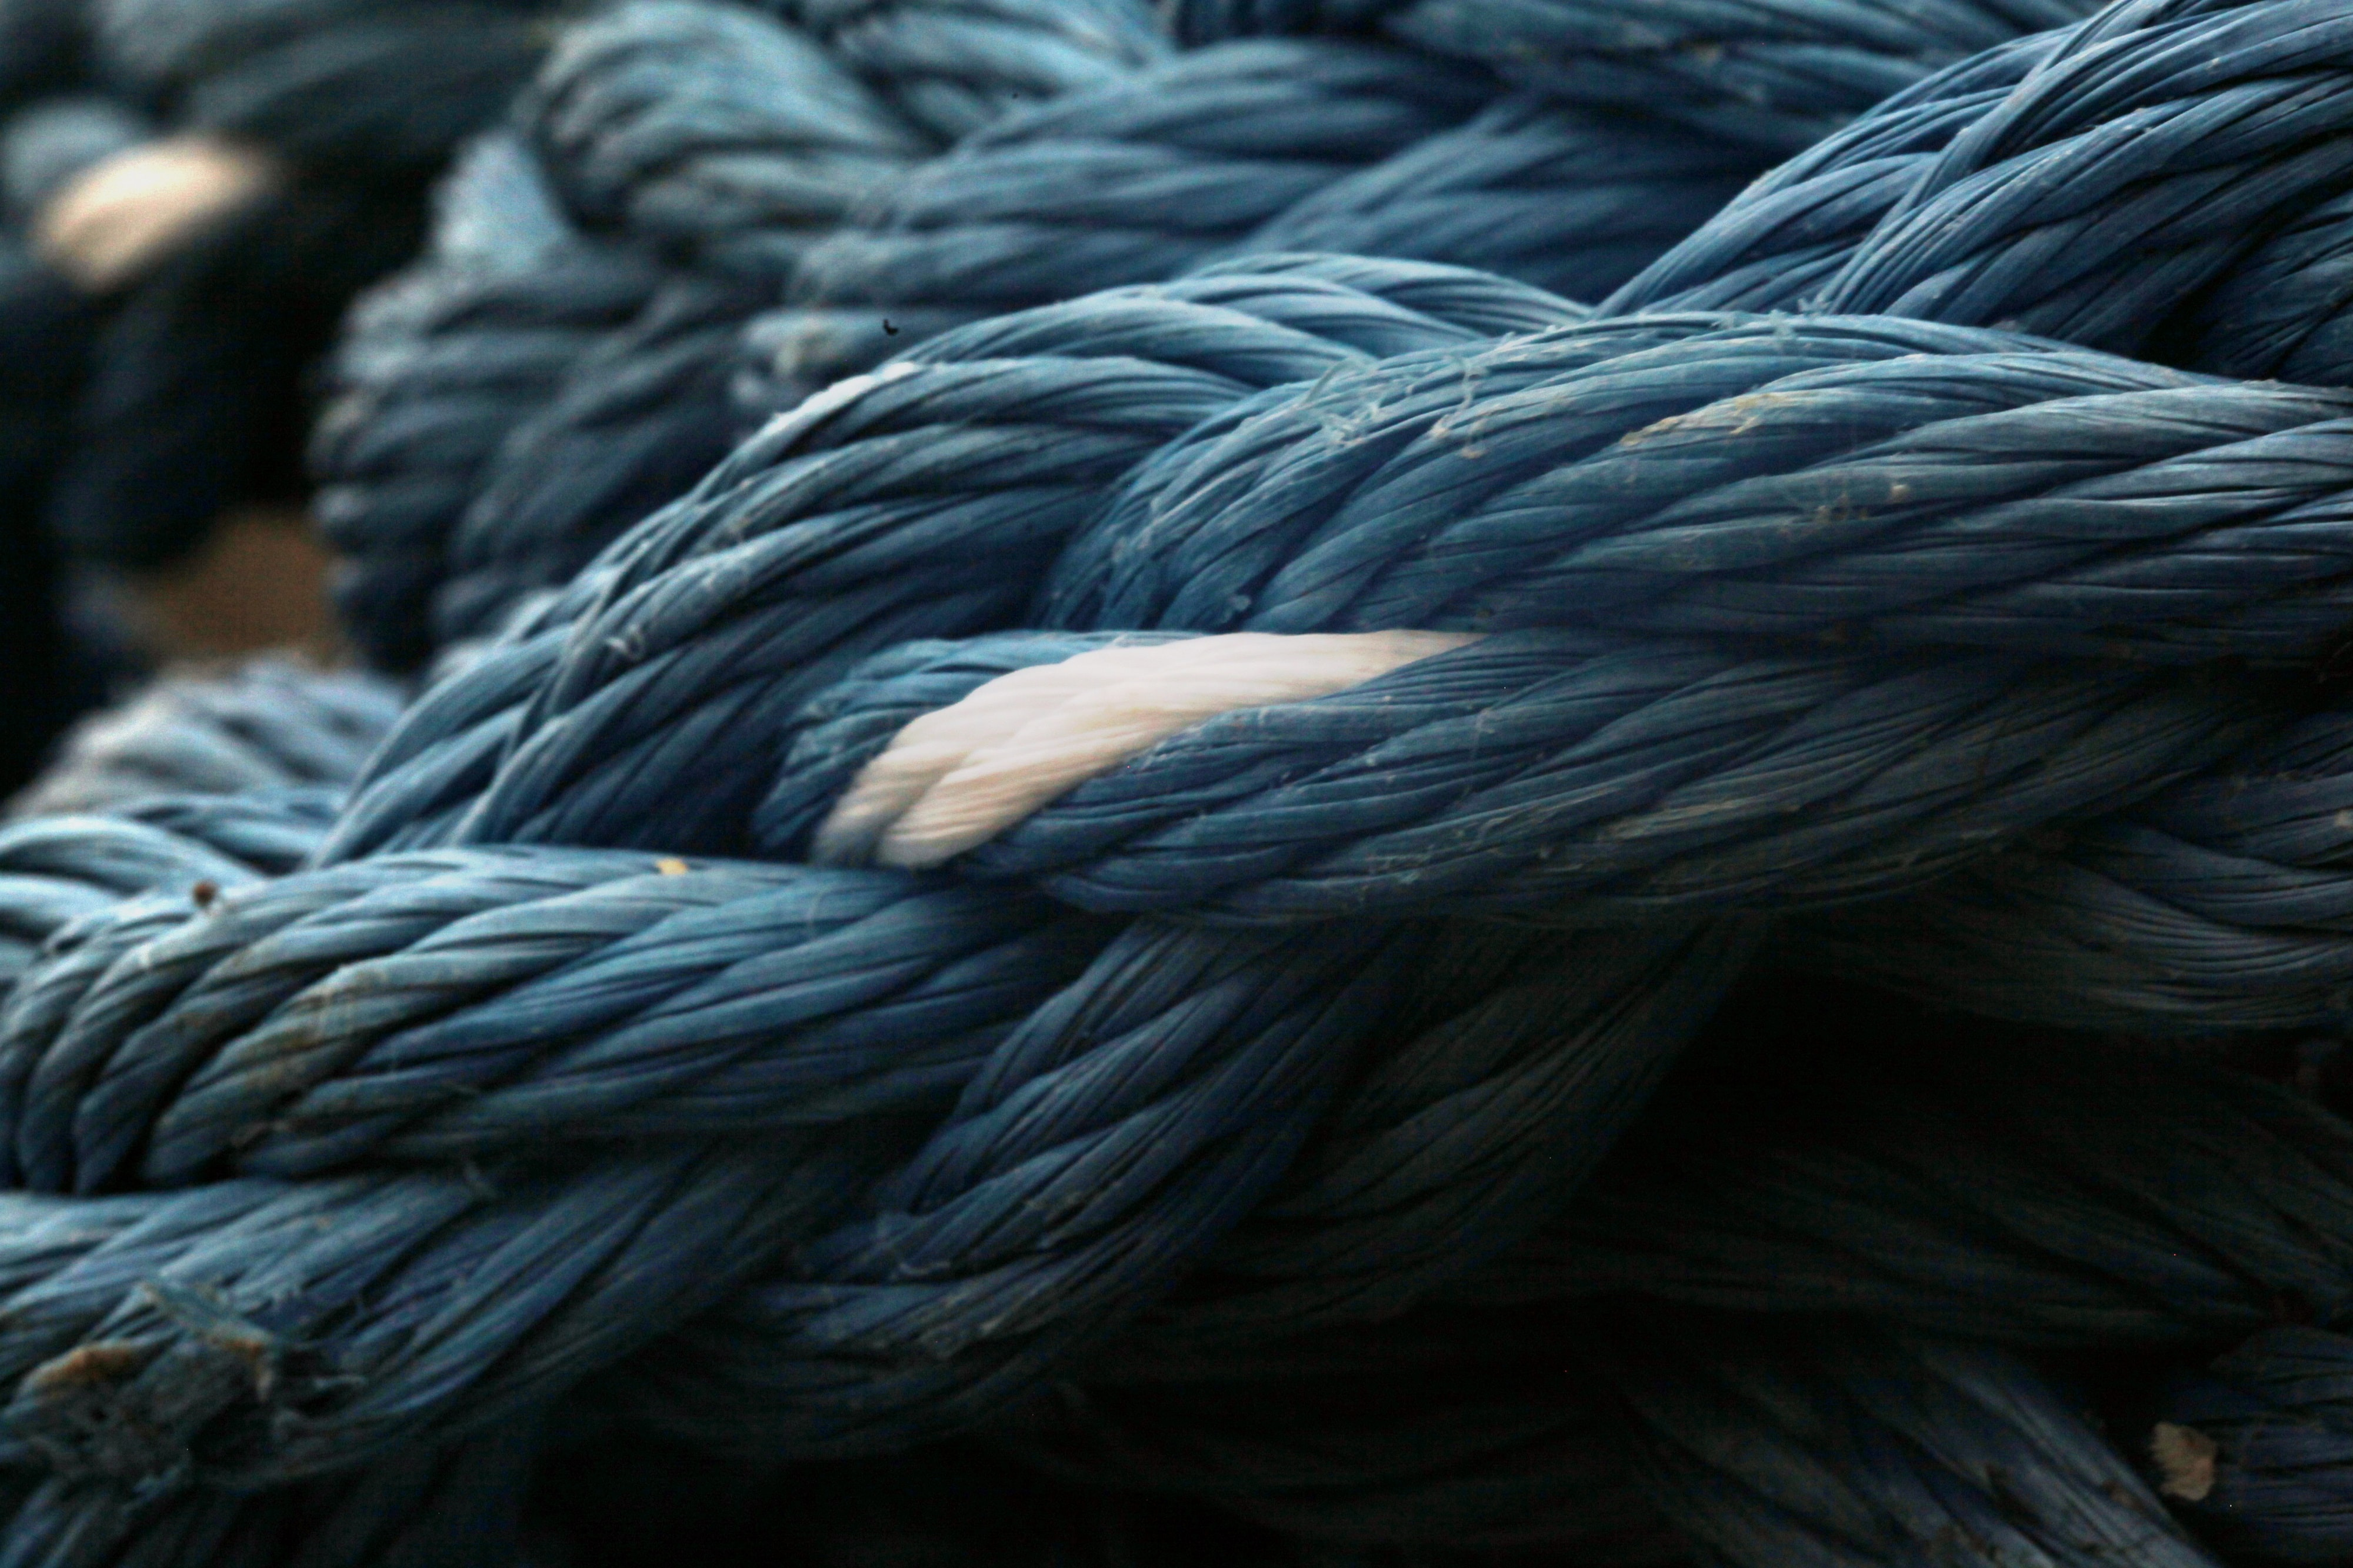 entangled blue and white ropes